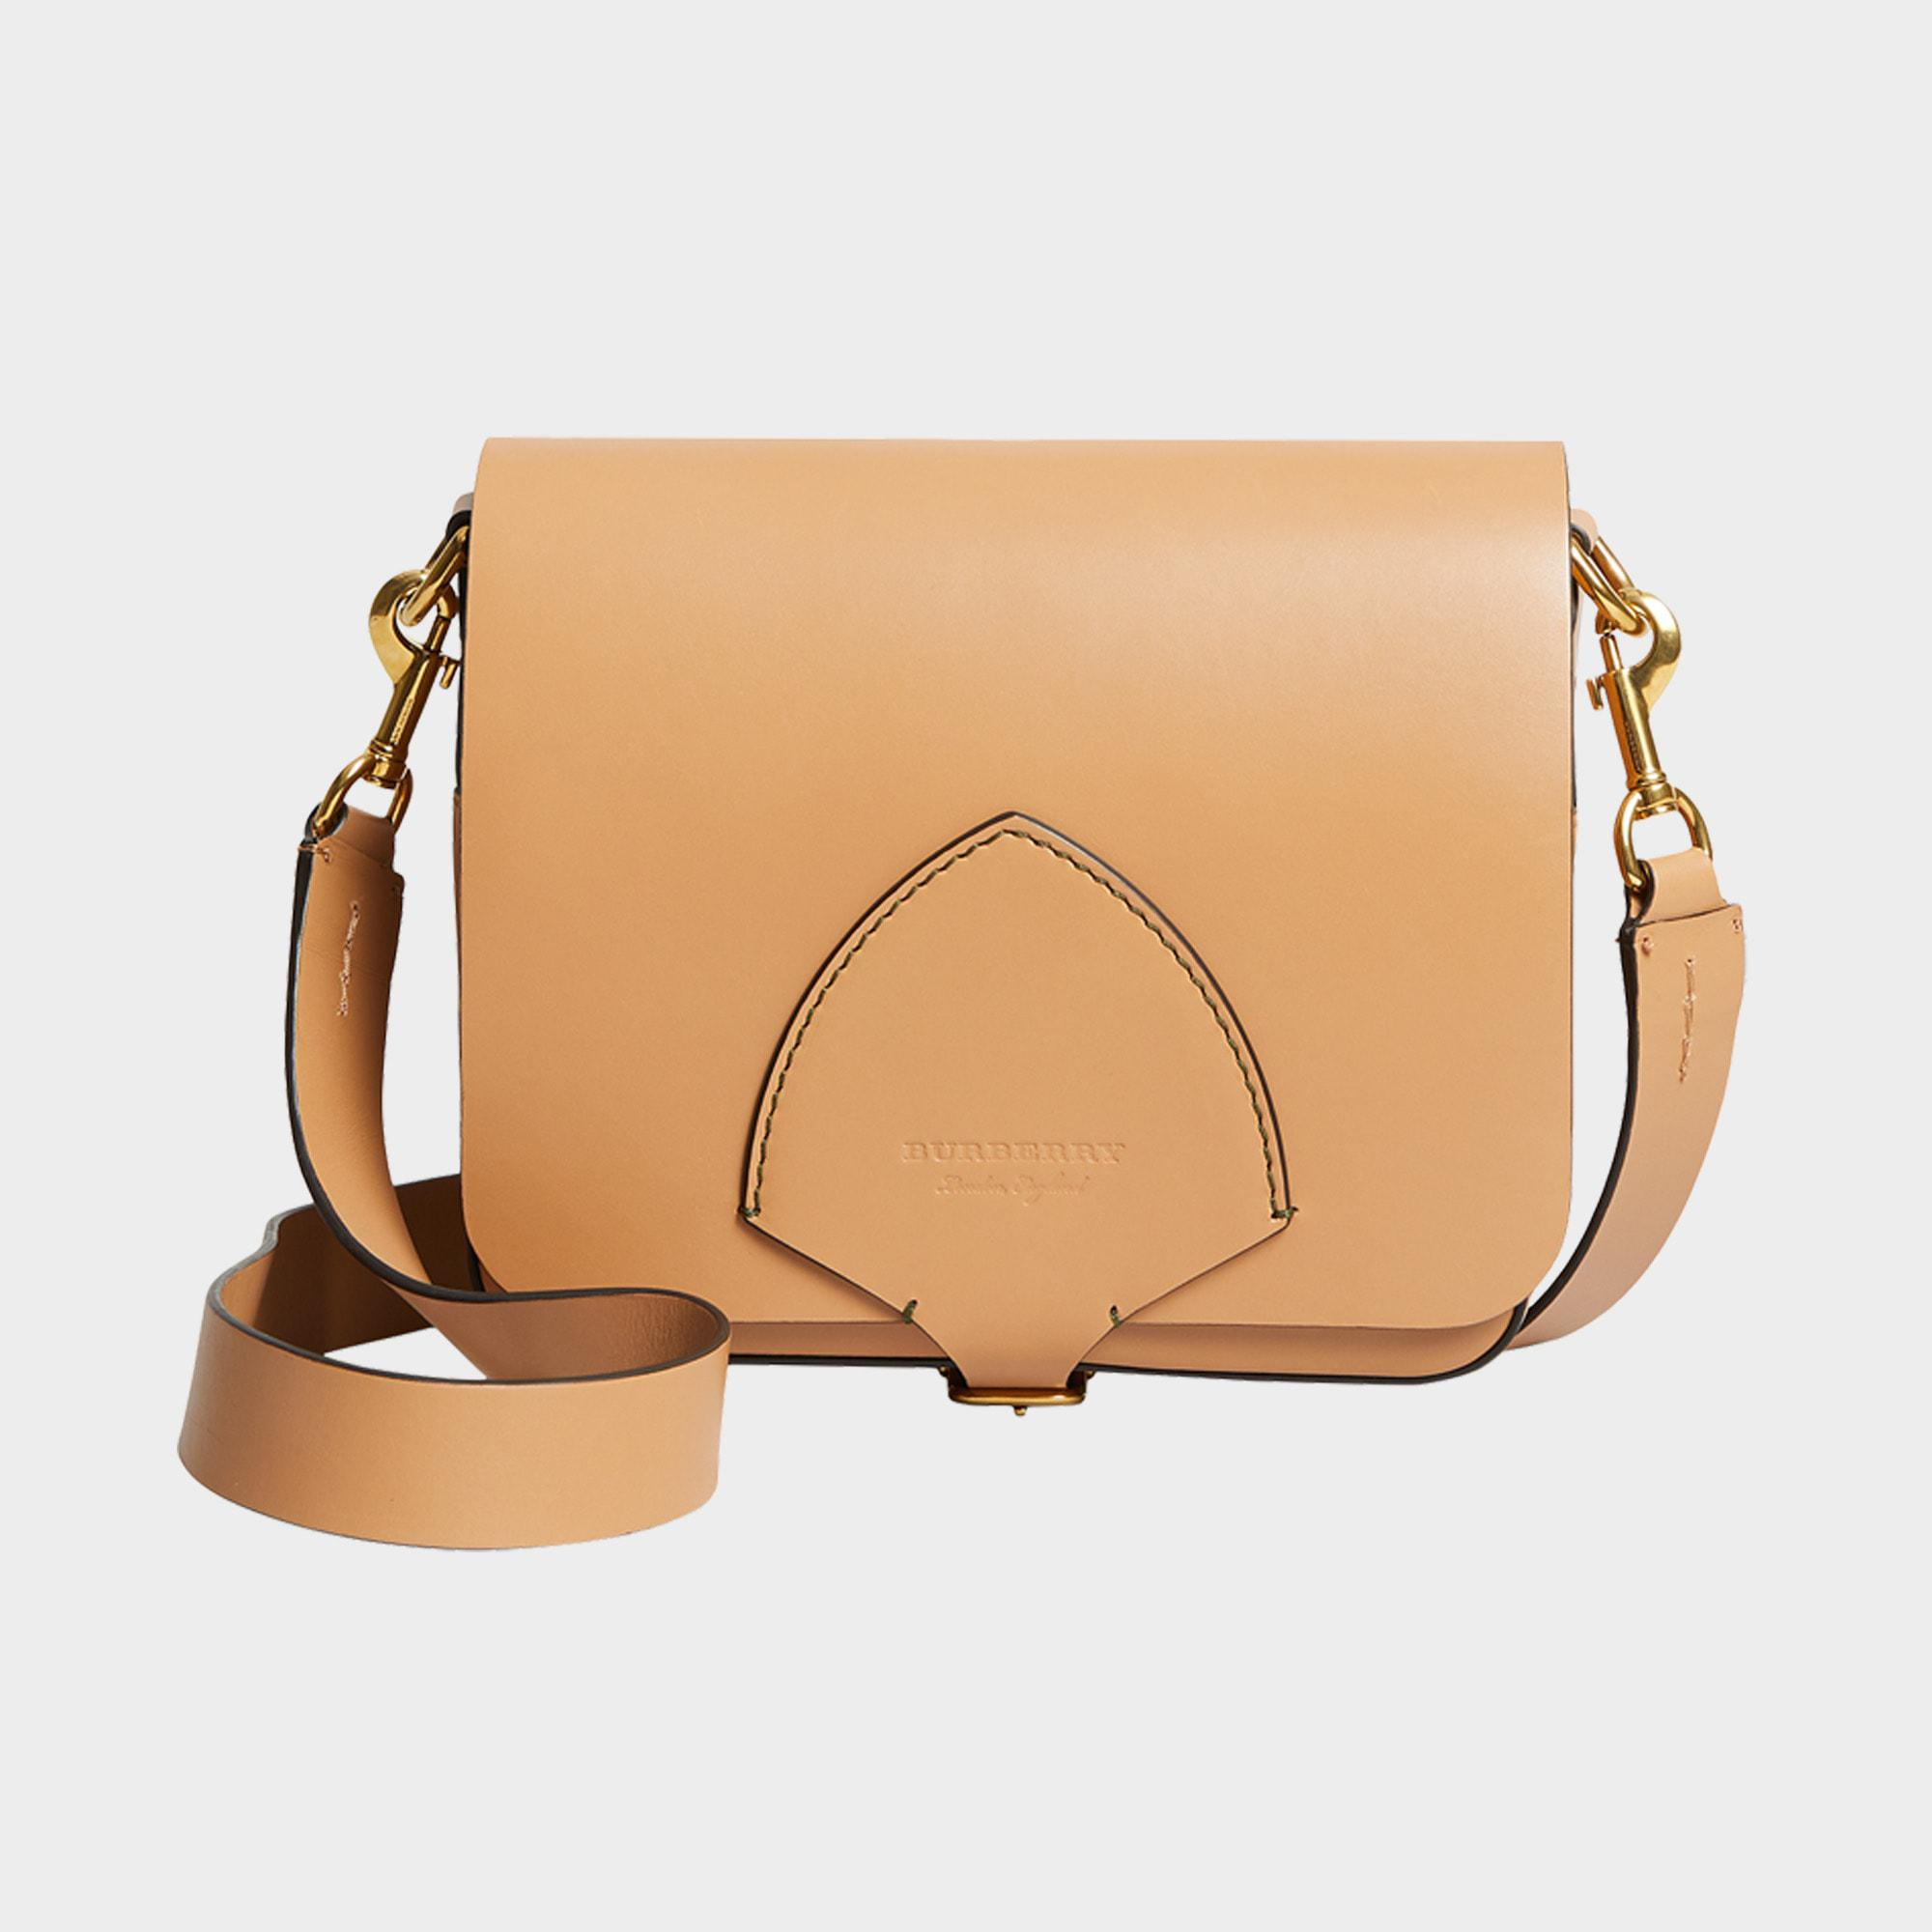 7c76ccfaa29a Lyst - Burberry The Square Satchel Bag In Camel Supple Leather